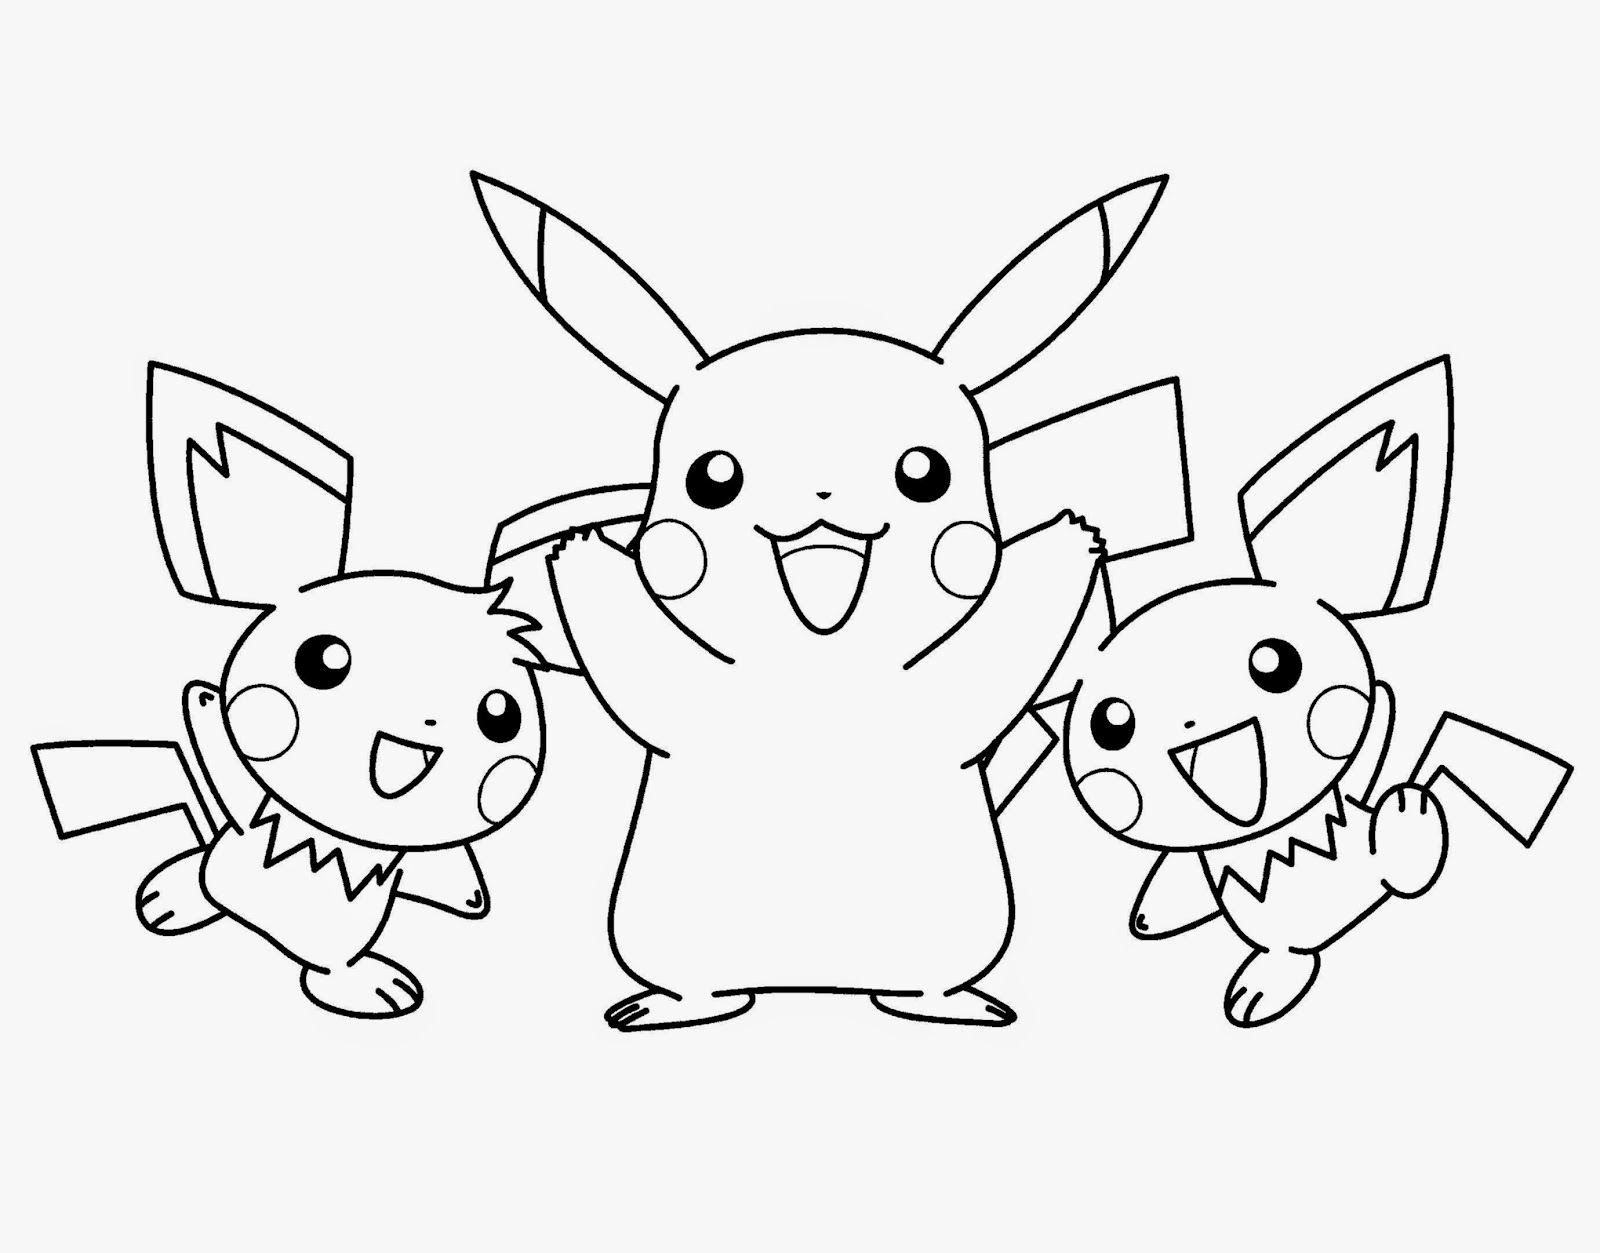 Pokemon Coloring Sheets | Free Coloring Sheet